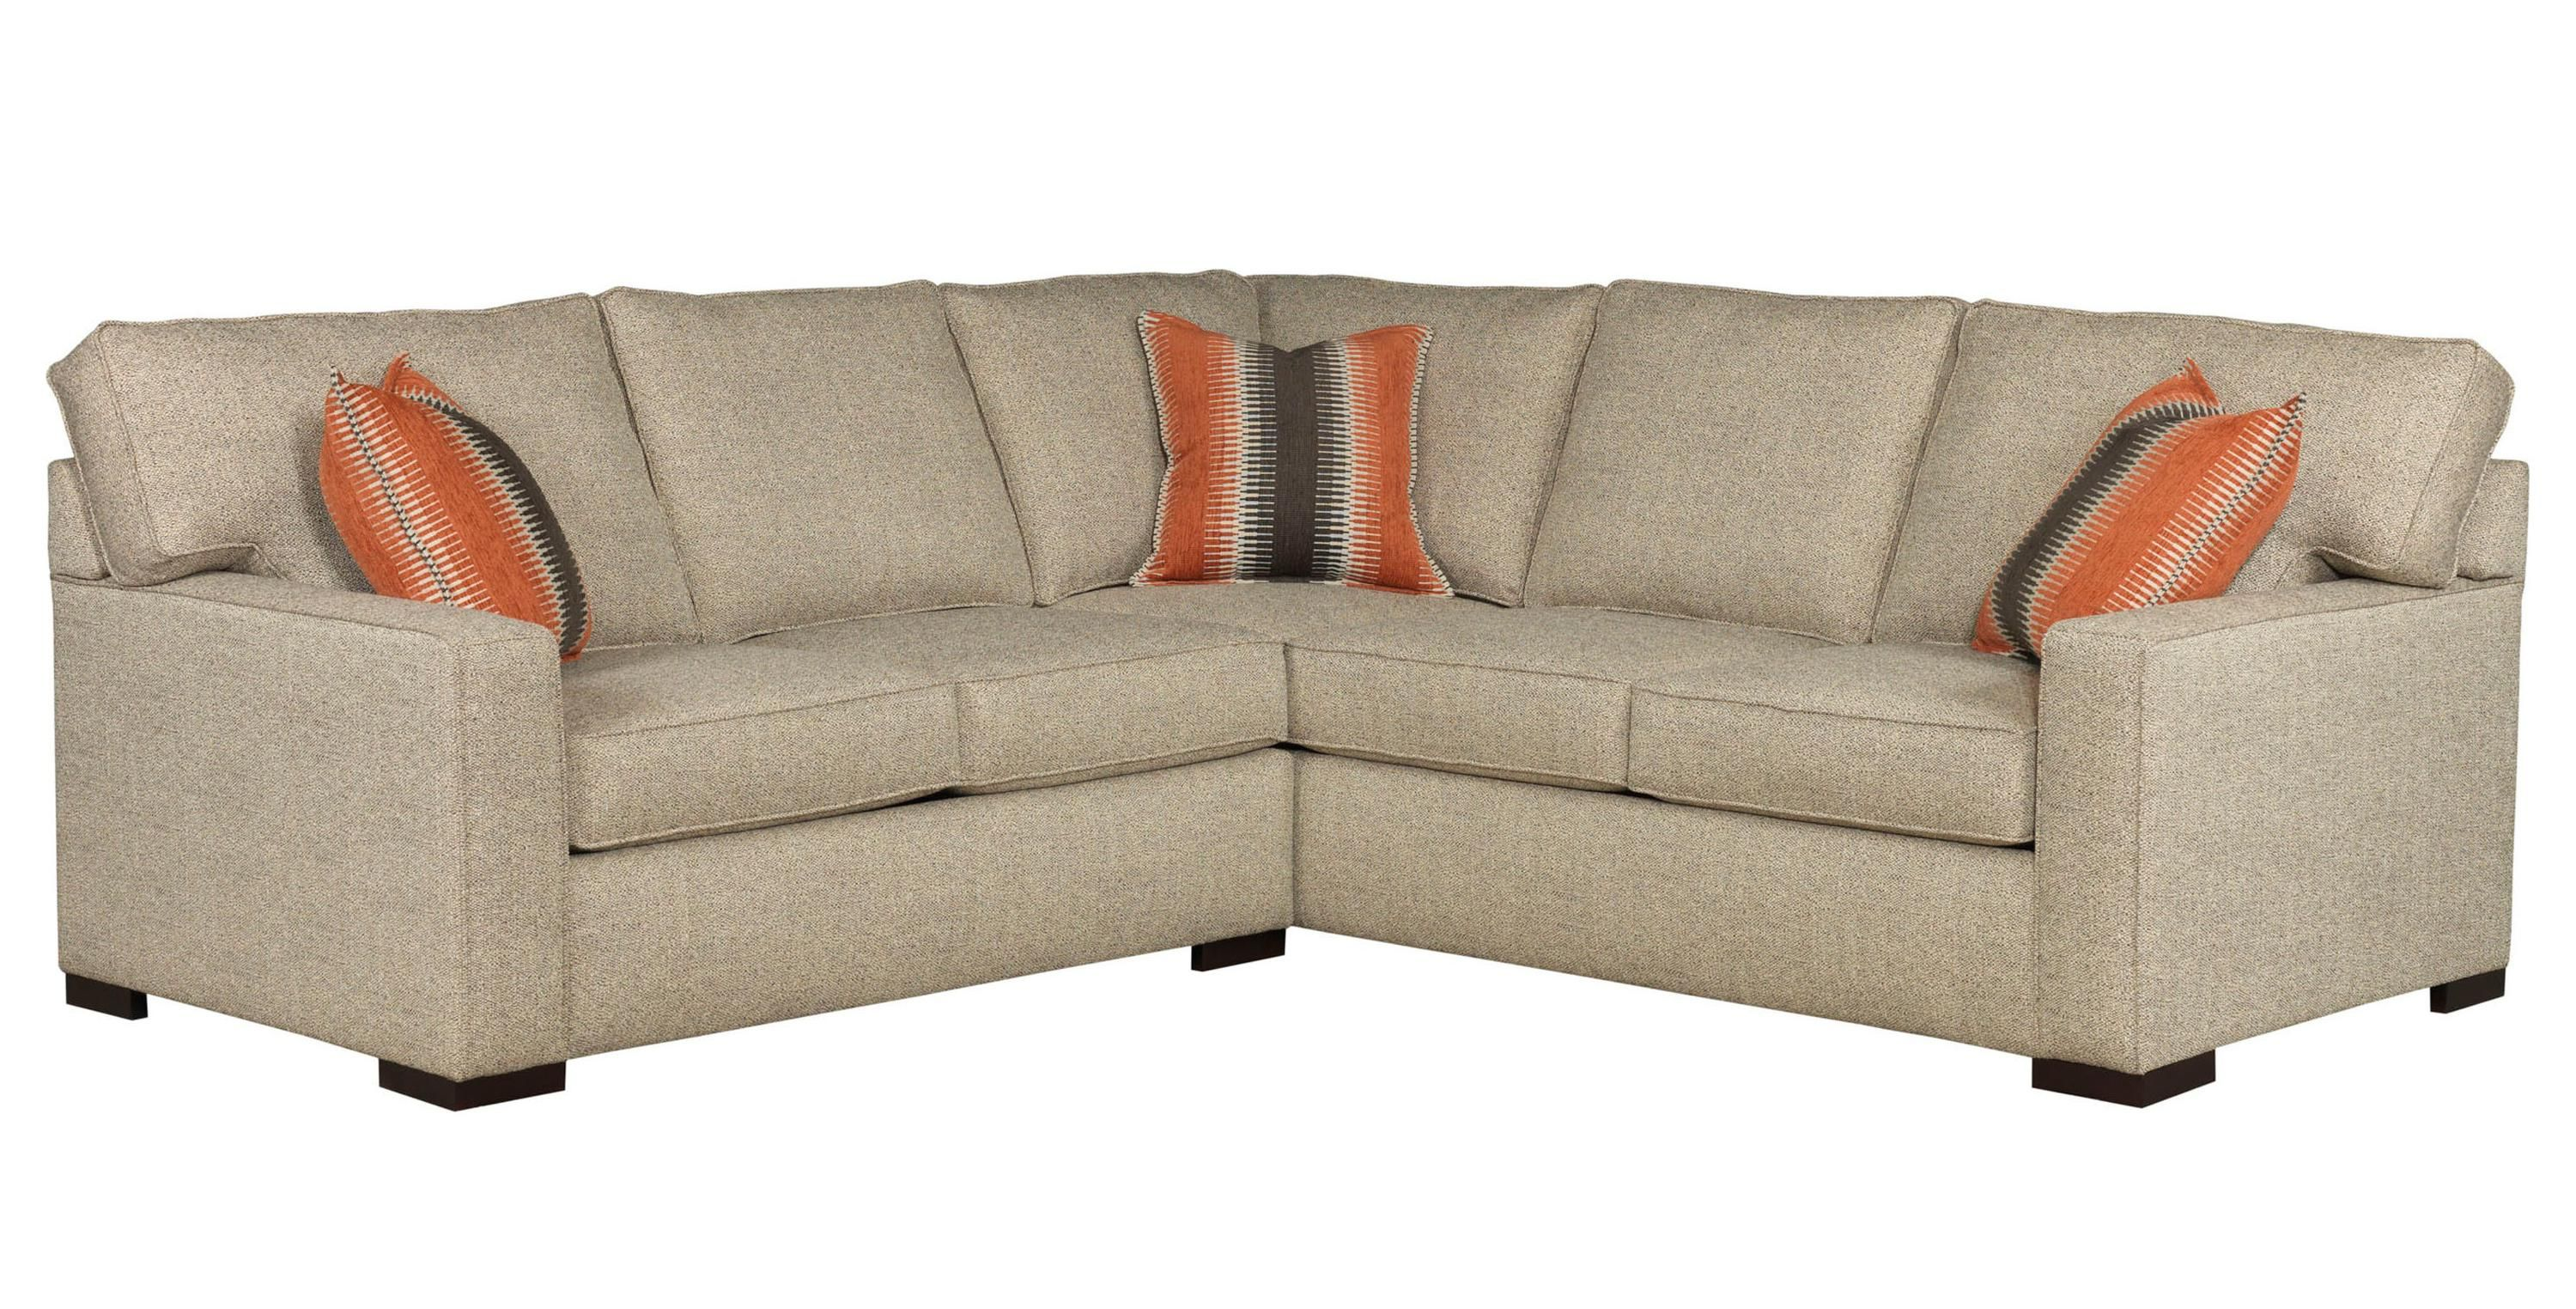 Living Room Furniture Pieces Raphael Two Piece Sectional Sofa By Broyhill Furniture